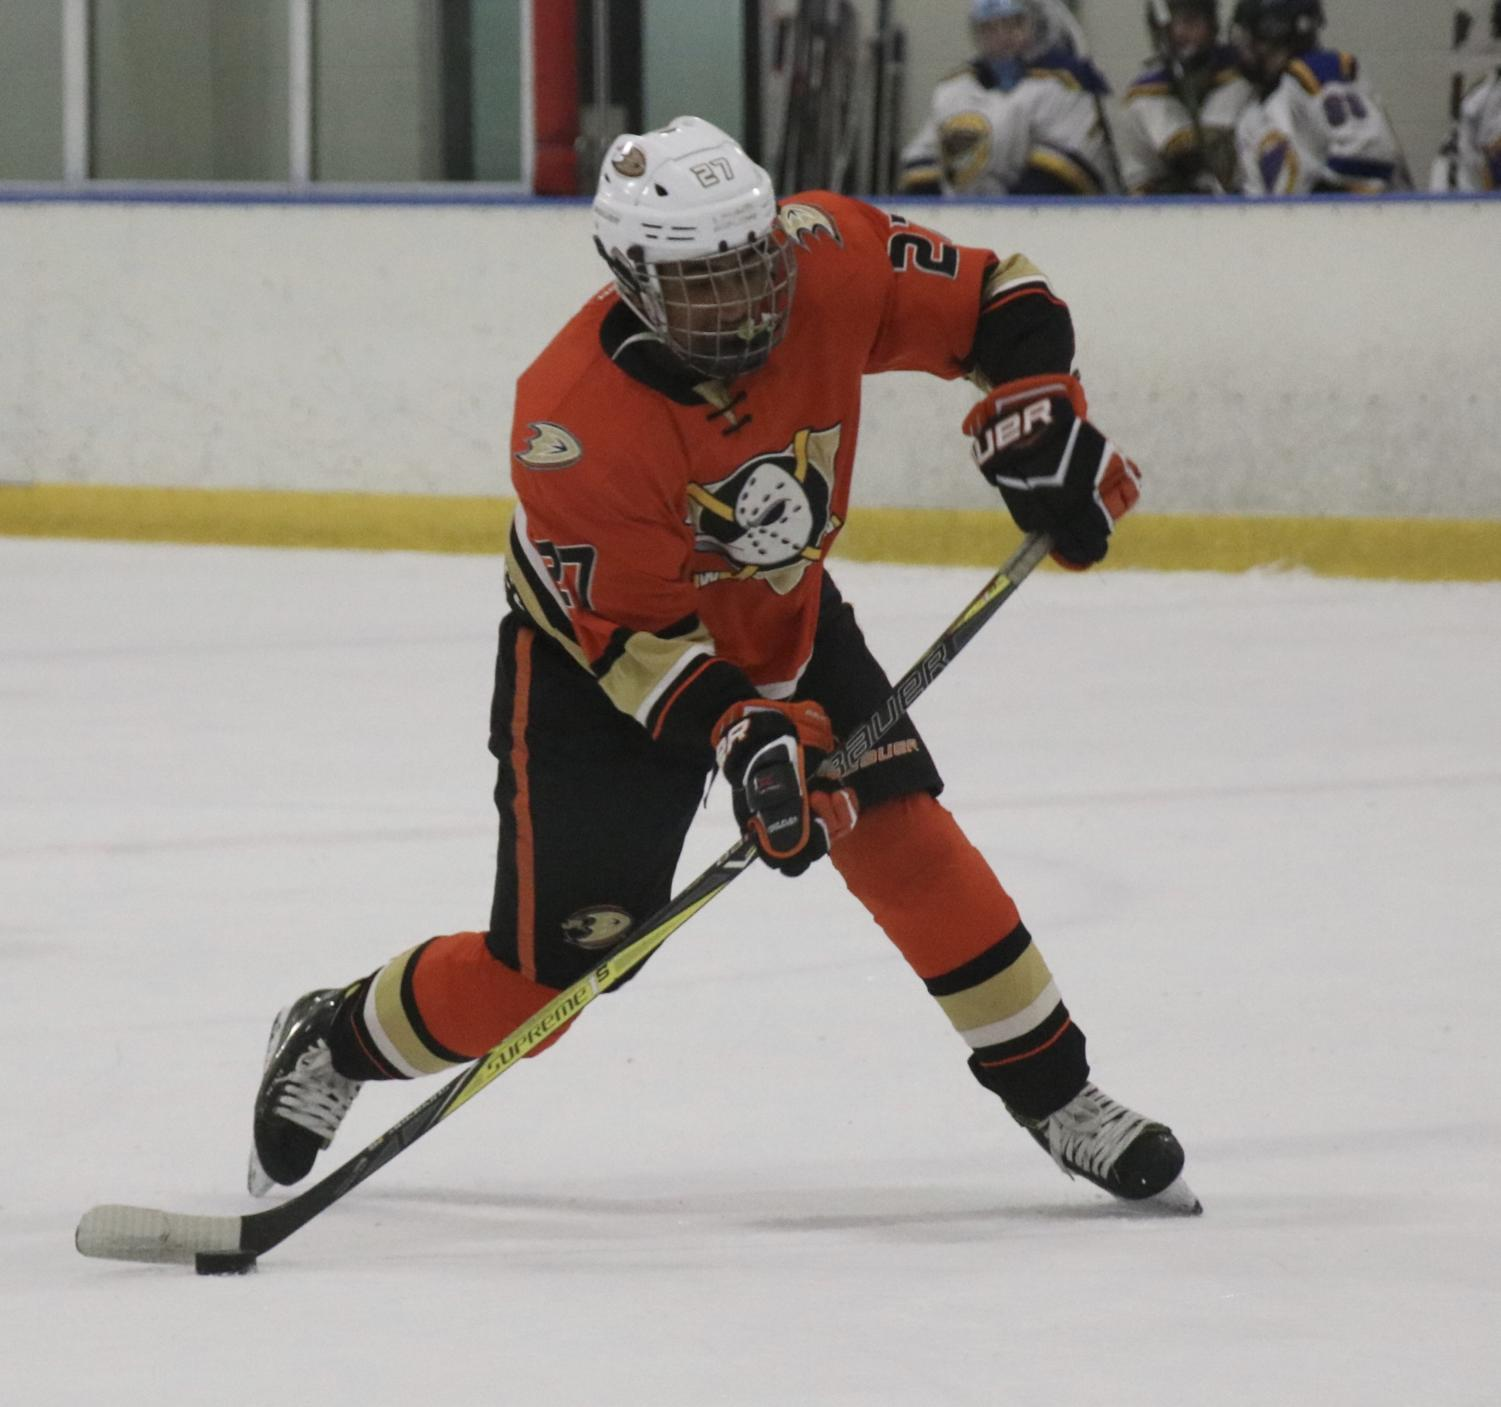 In a rapid counter attack, Manan Mendiratta prepares to slap the puck across the ice into the netting. His travel team, the Anaheim Junior Ducks, is one of the top three in California.